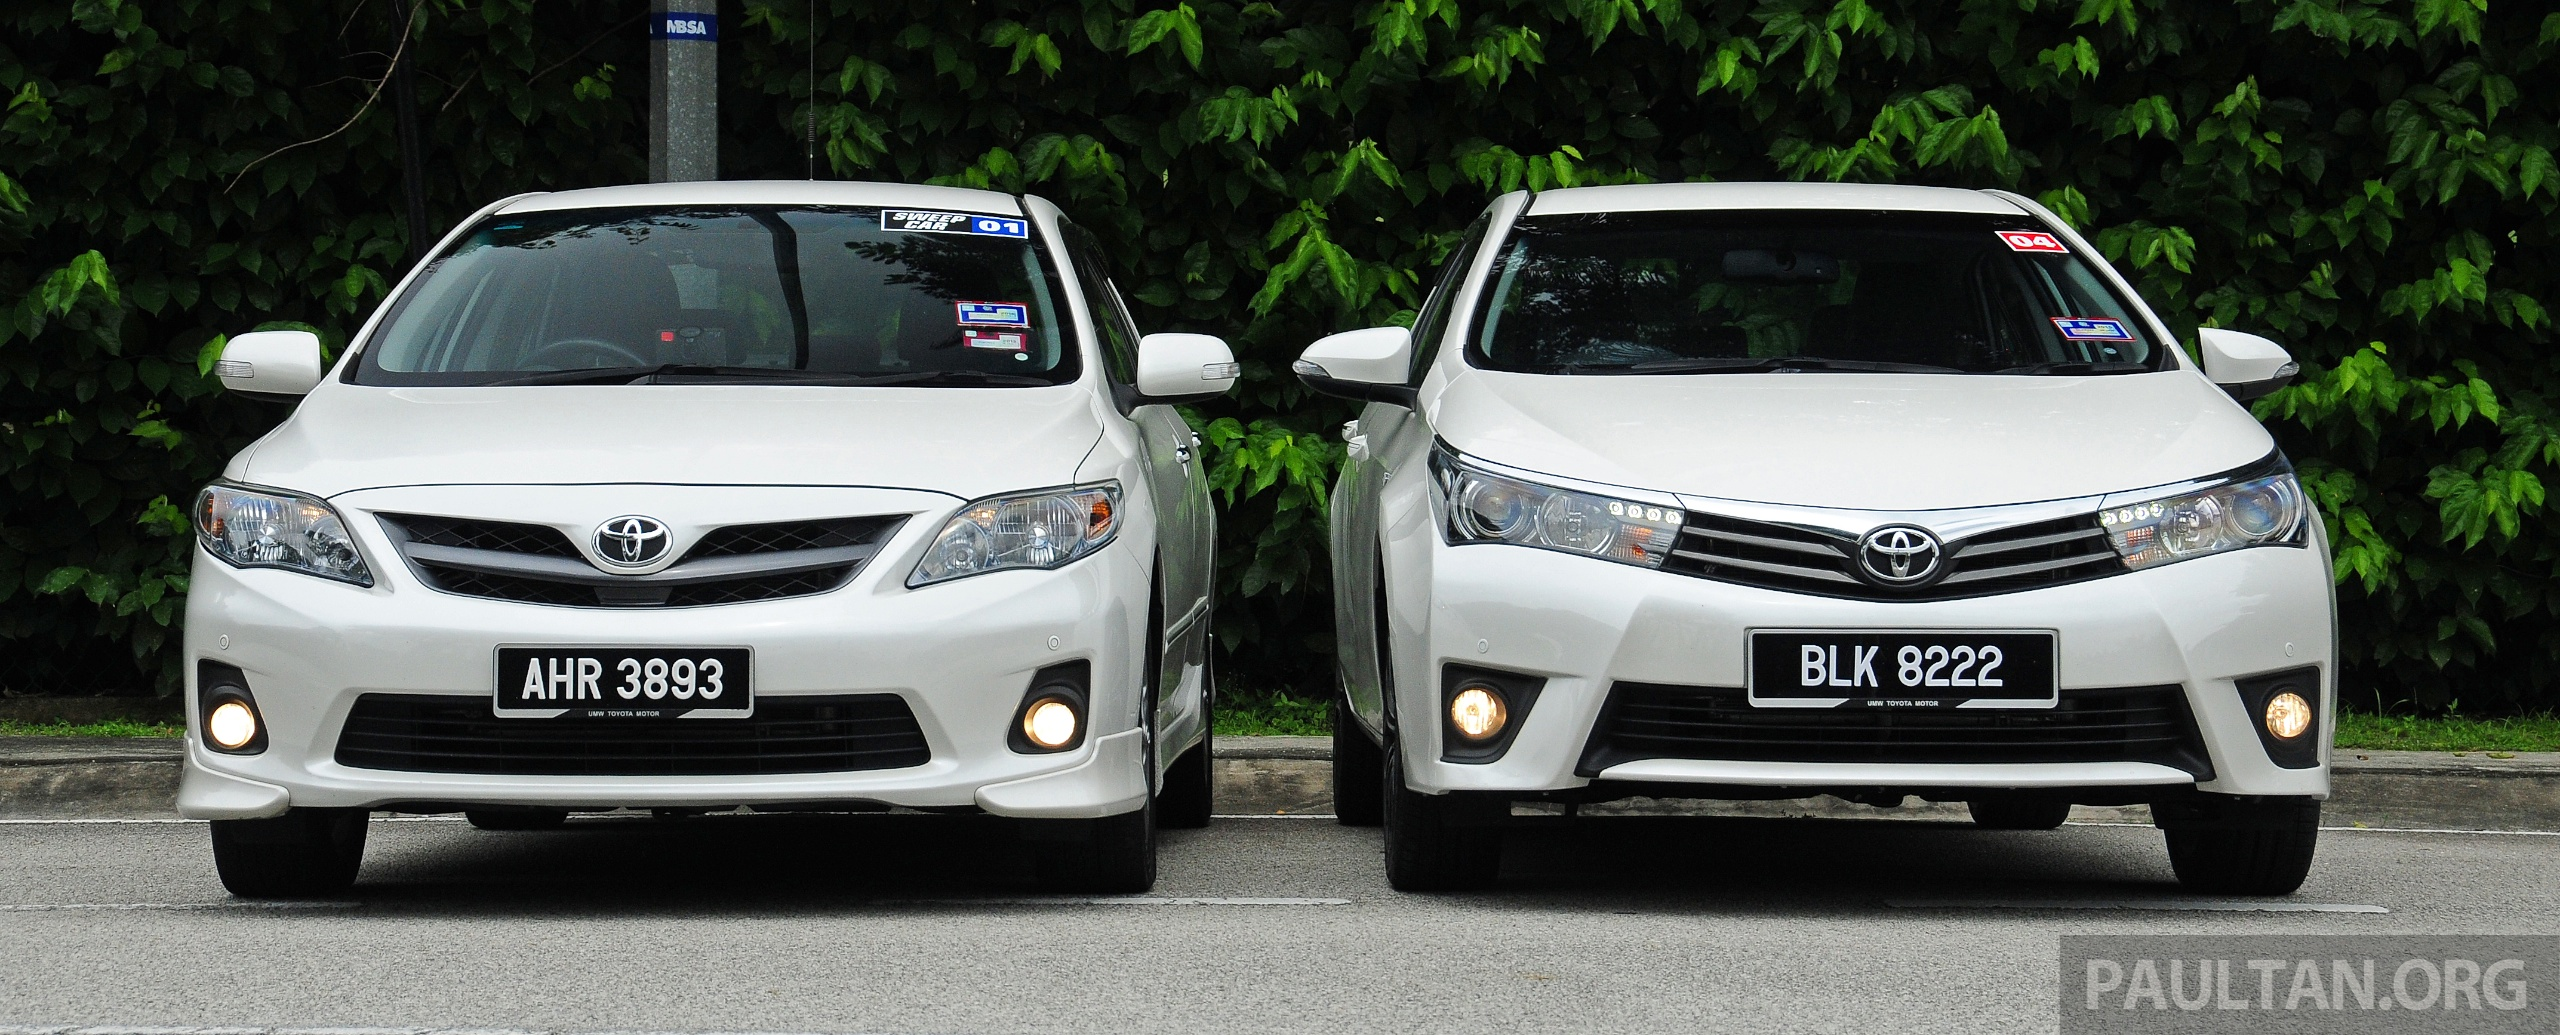 Gallery Old And New Toyota Corolla Altis Compared Paul